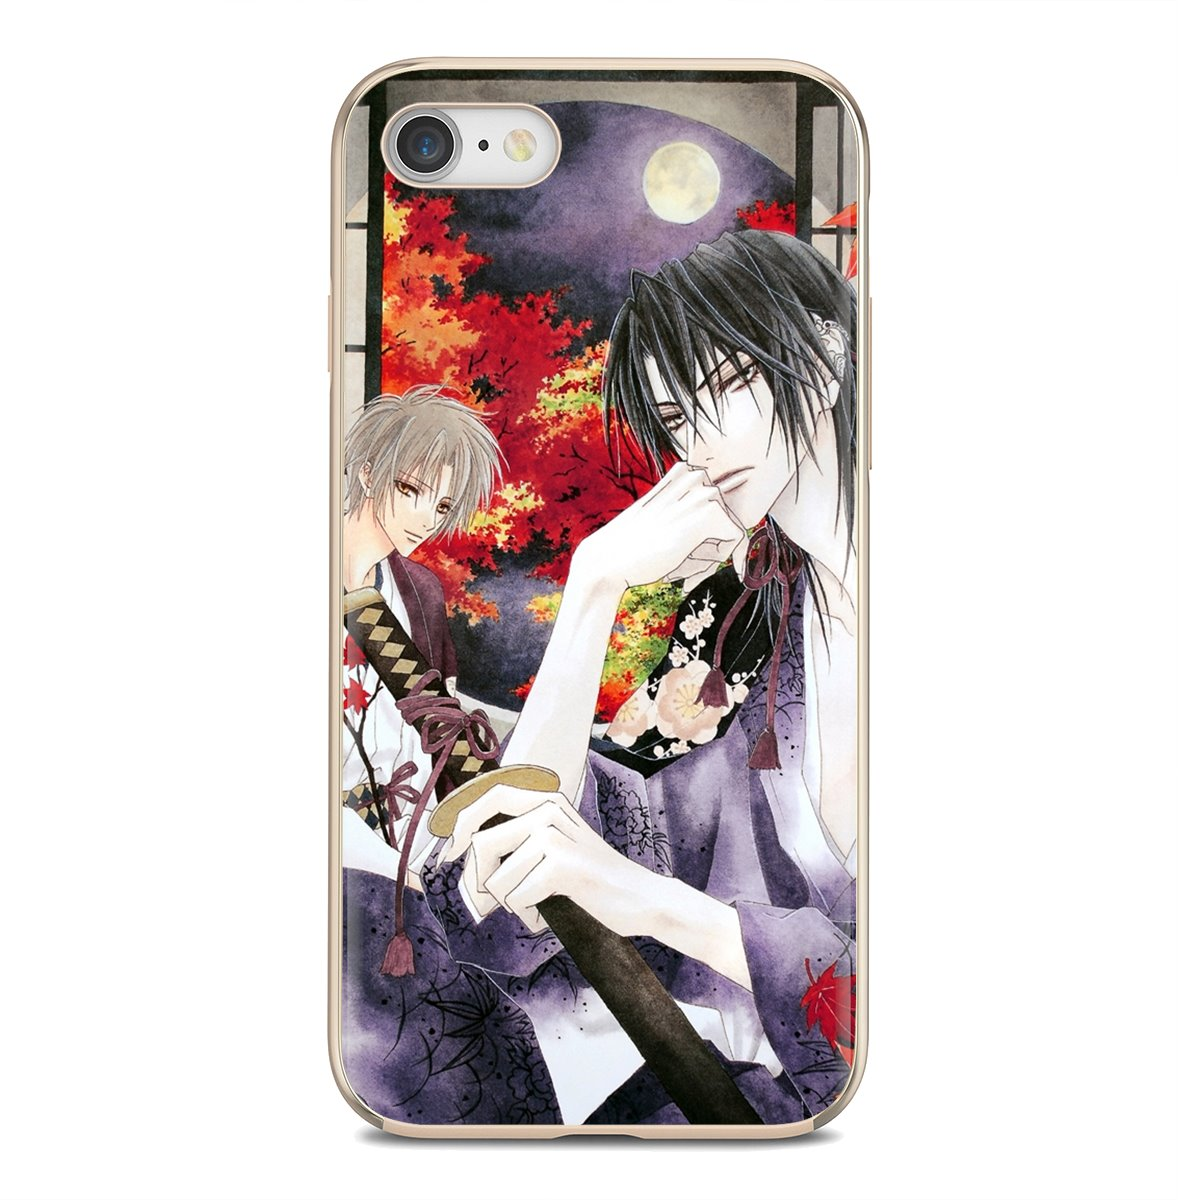 Uraboku Anime Wallpaper For Iphone 11 Pro 4 4s 5 5s Se 5c 6 6s 7 8 X Xr Xs Plus Max For Ipod Touch Durable Silicone Phone Case Fitted Cases Aliexpress